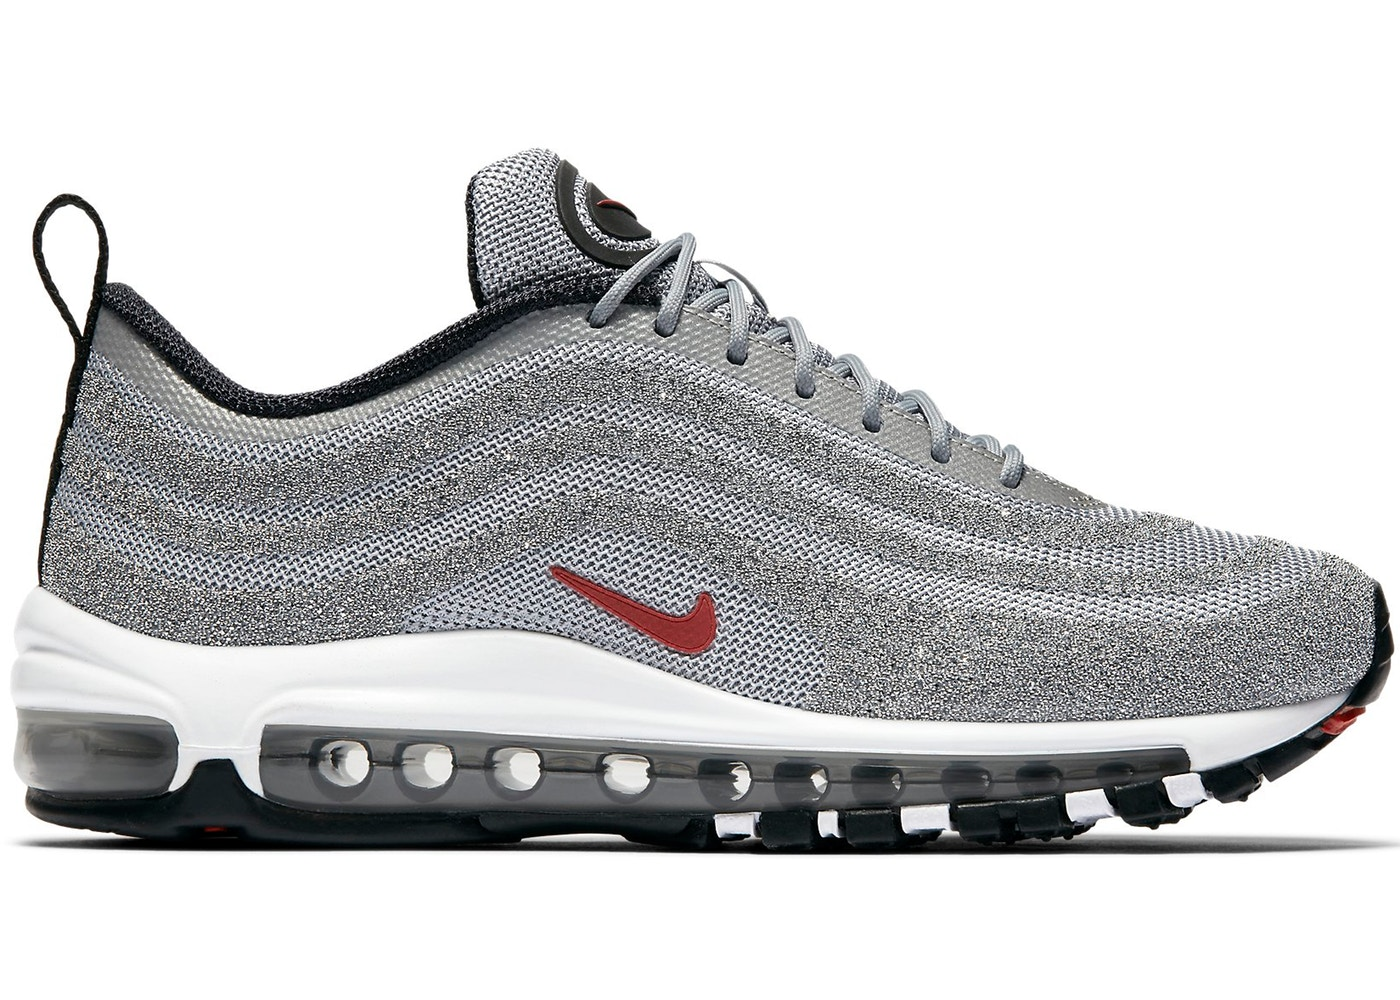 low priced 3d53f 470b4 Air Max 97 LX Swarovski Silver Bullet (W) - 927508-002